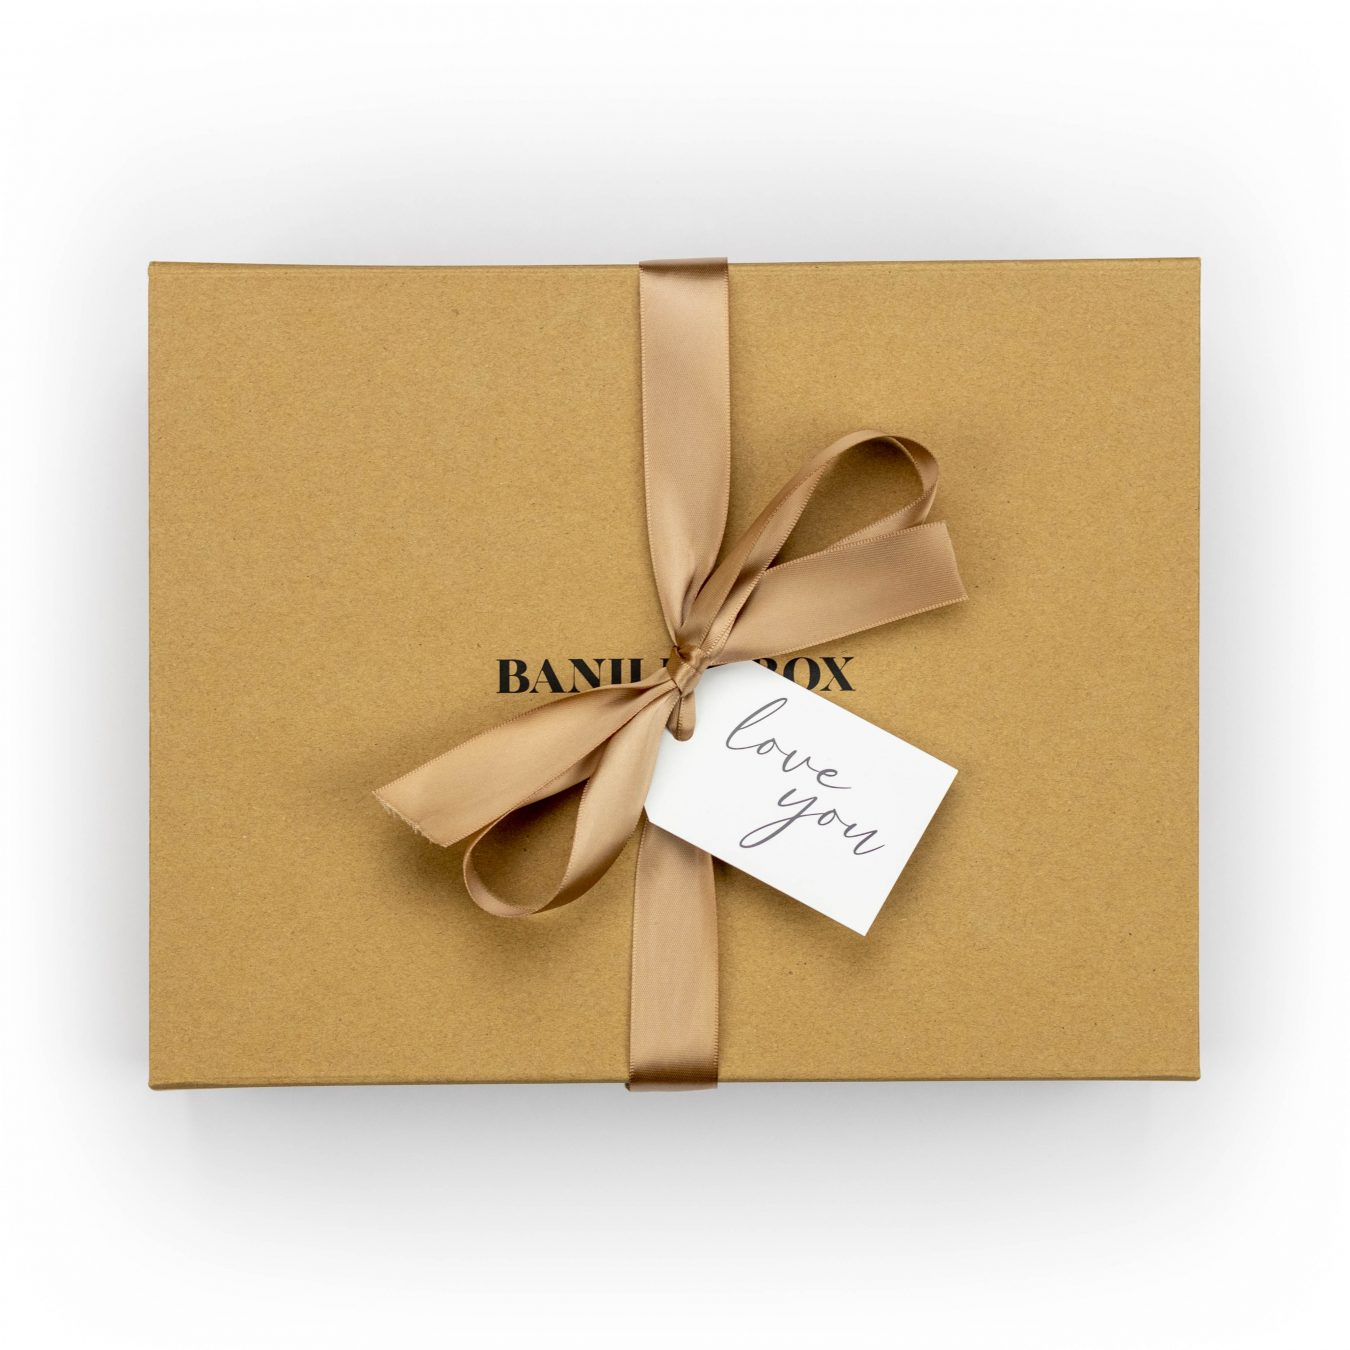 Banilla Box keepsake box in Kraft with gold ribbon